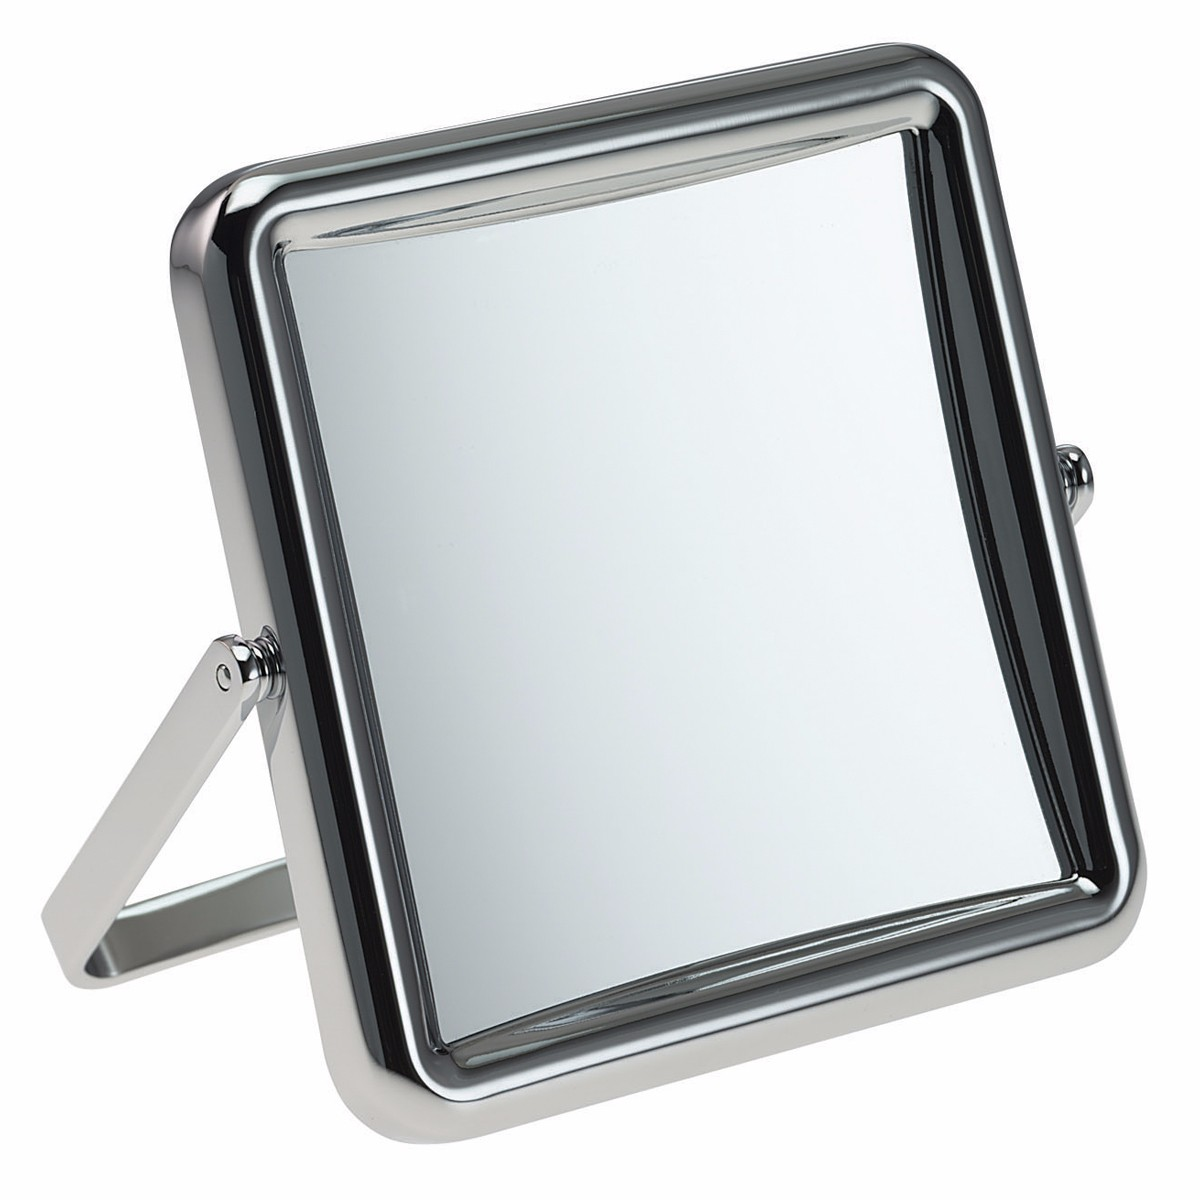 514 10 chr 0445 1 - Small Square 5x Magnification Travel Mirror By Fmg - 514/10CH